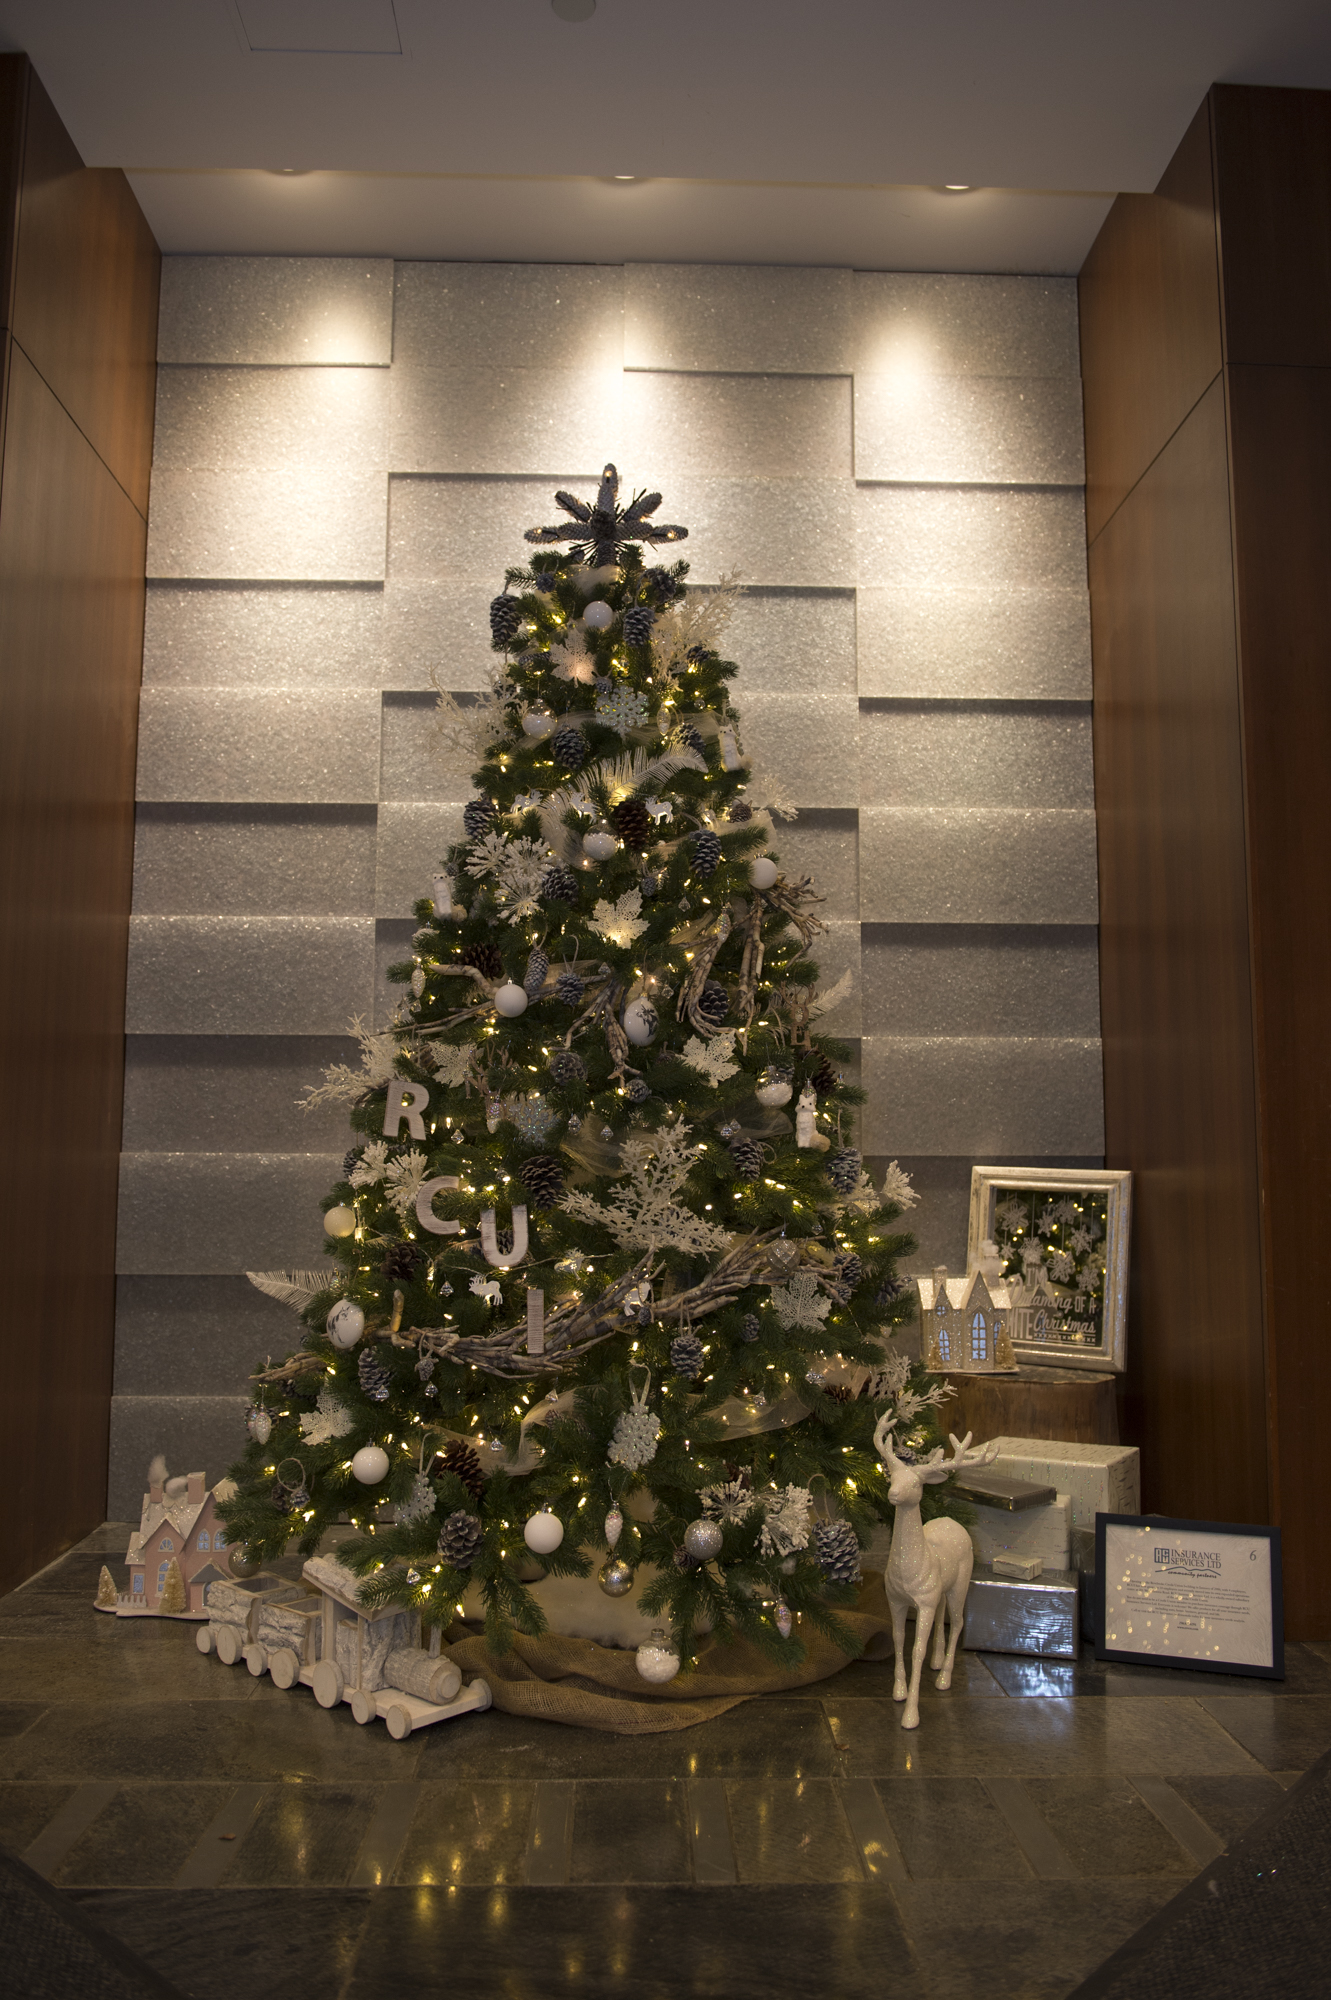 The Sutton Place Hotel's 4th Annual Christmas Tree Pageant